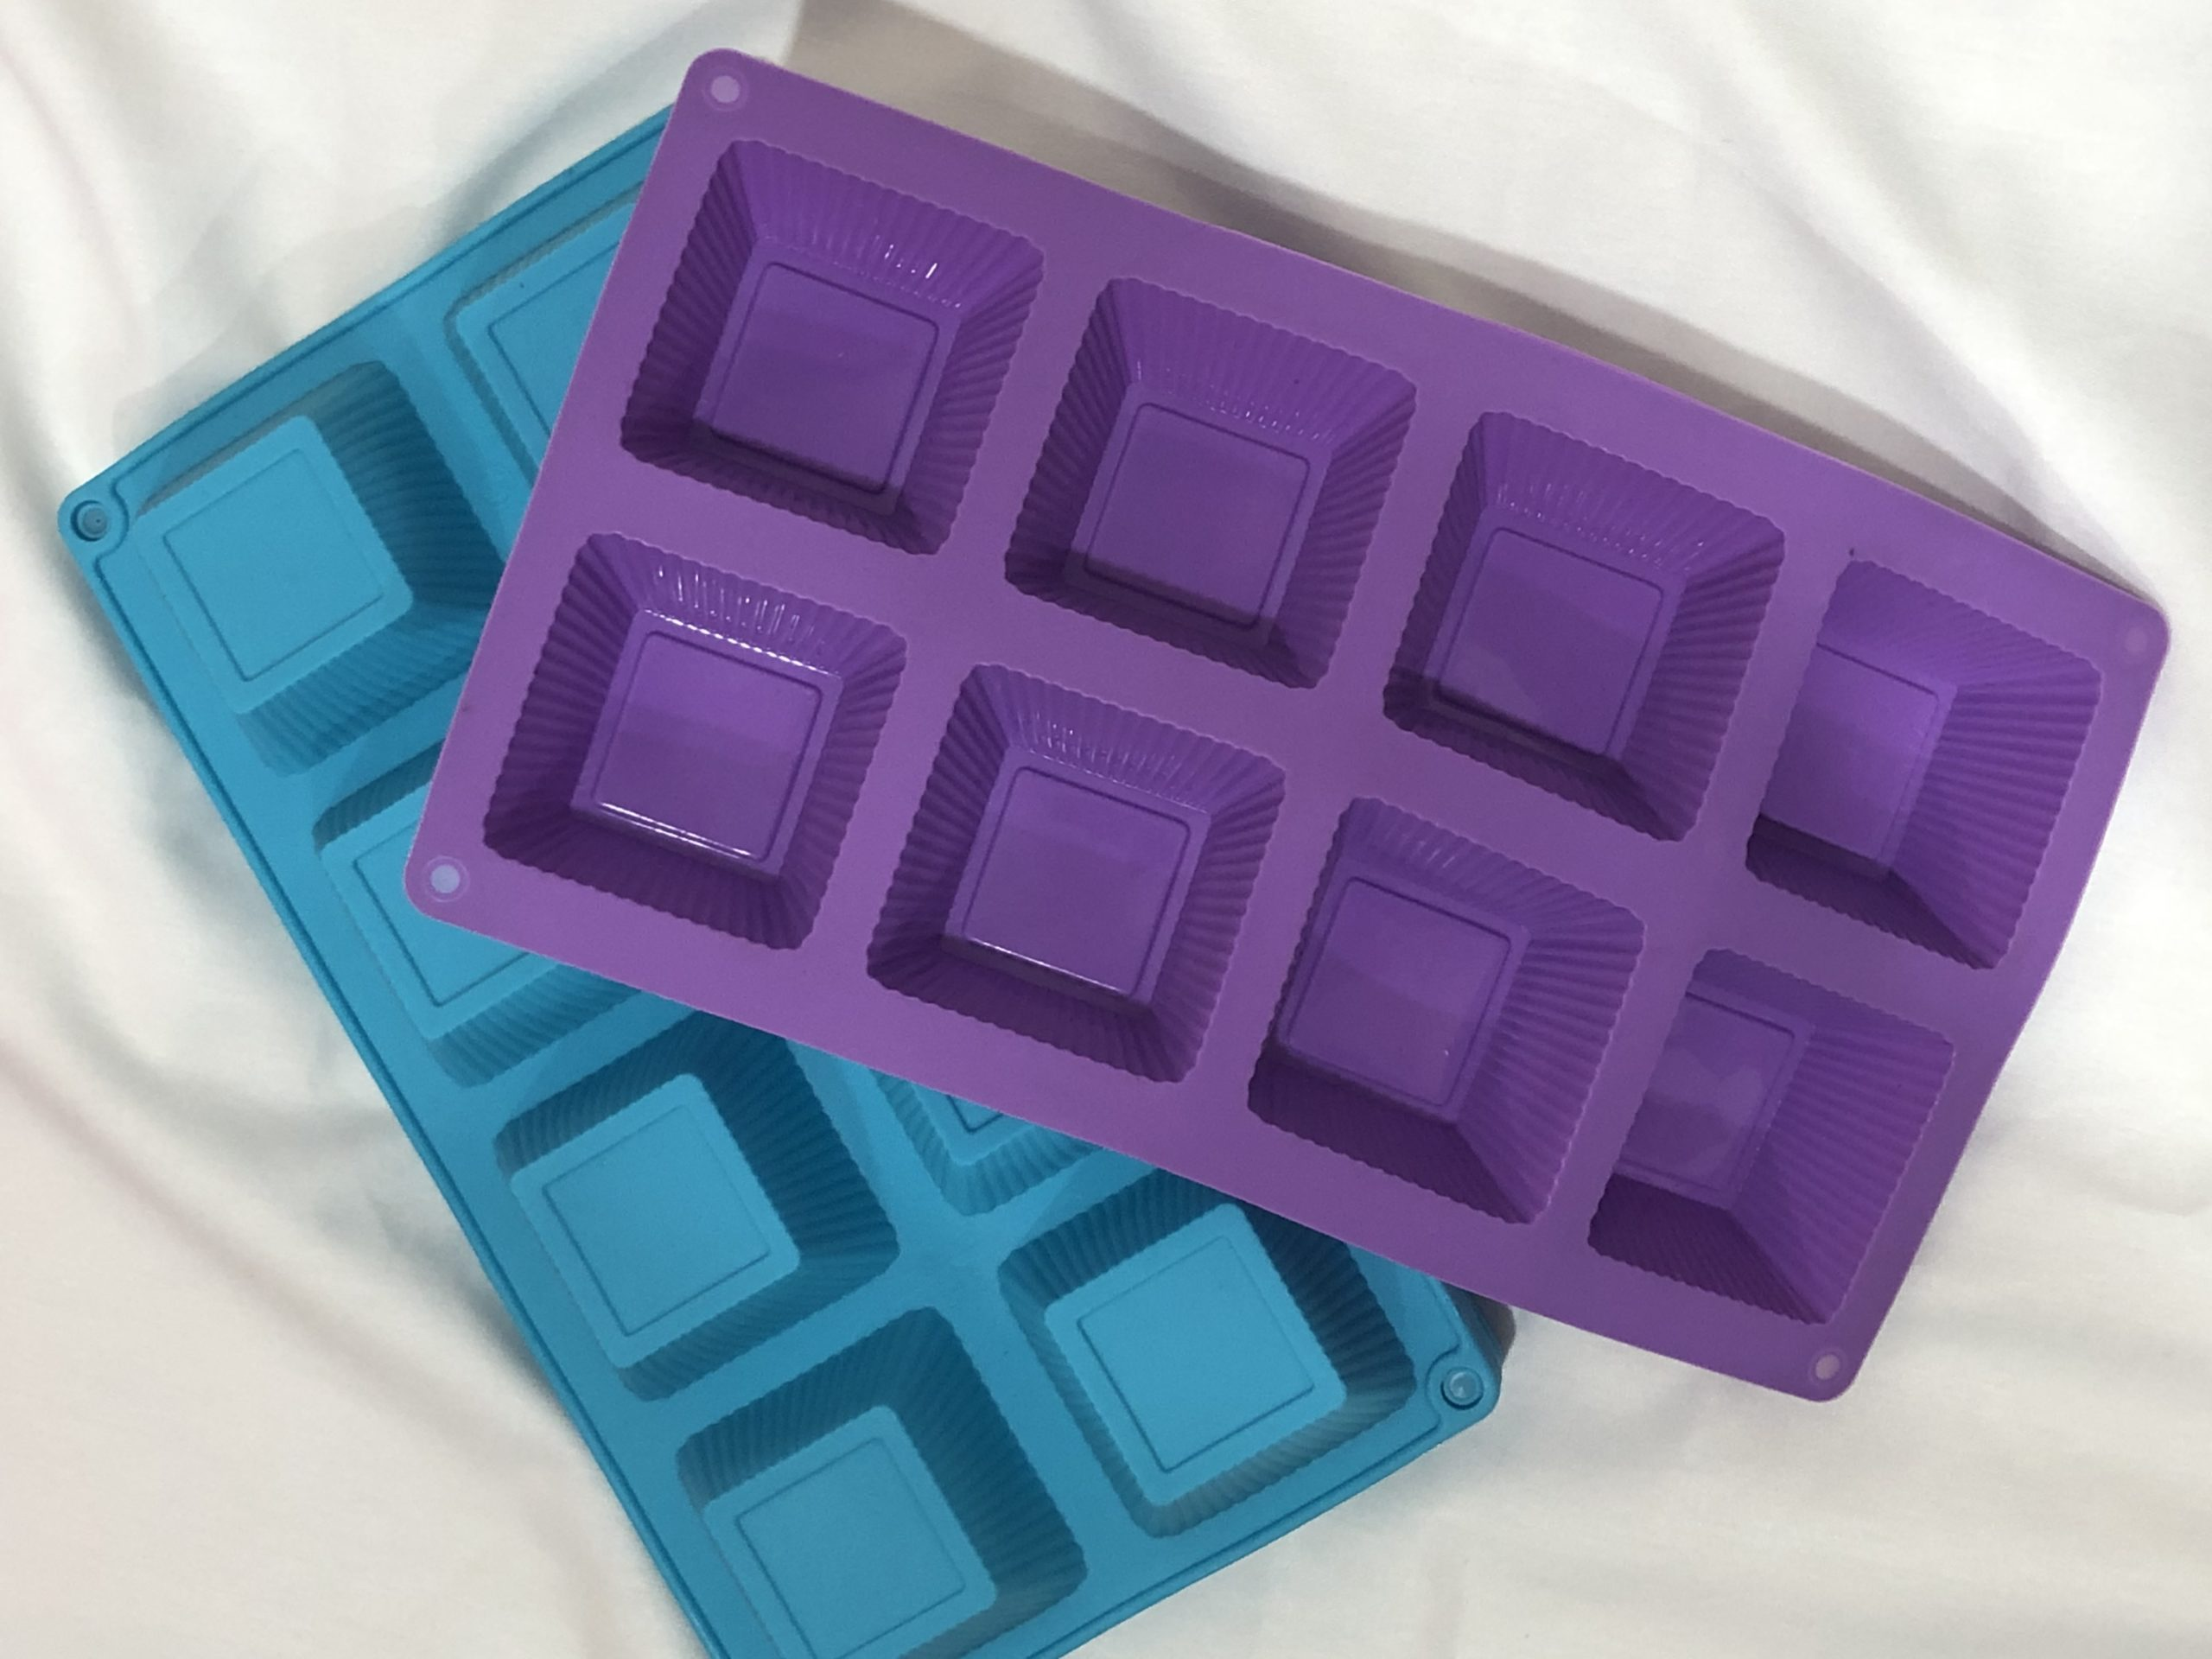 Cup Cakes 8 Cavity Silicon Mould via @chooicenz